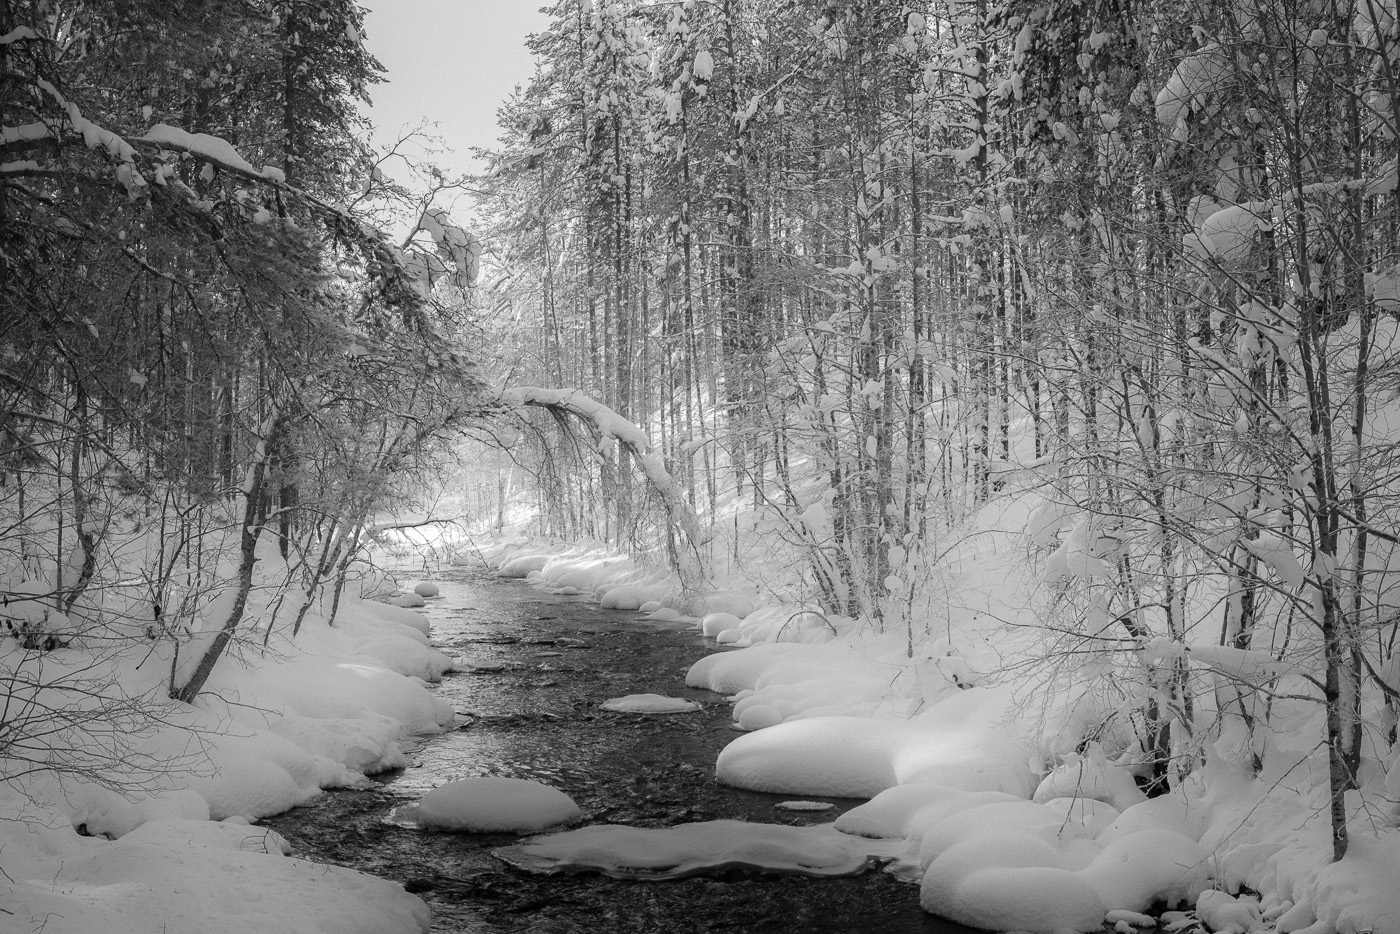 A river between snowy banks in Lapland. Nikon D800e and Leica-R Summicron 35